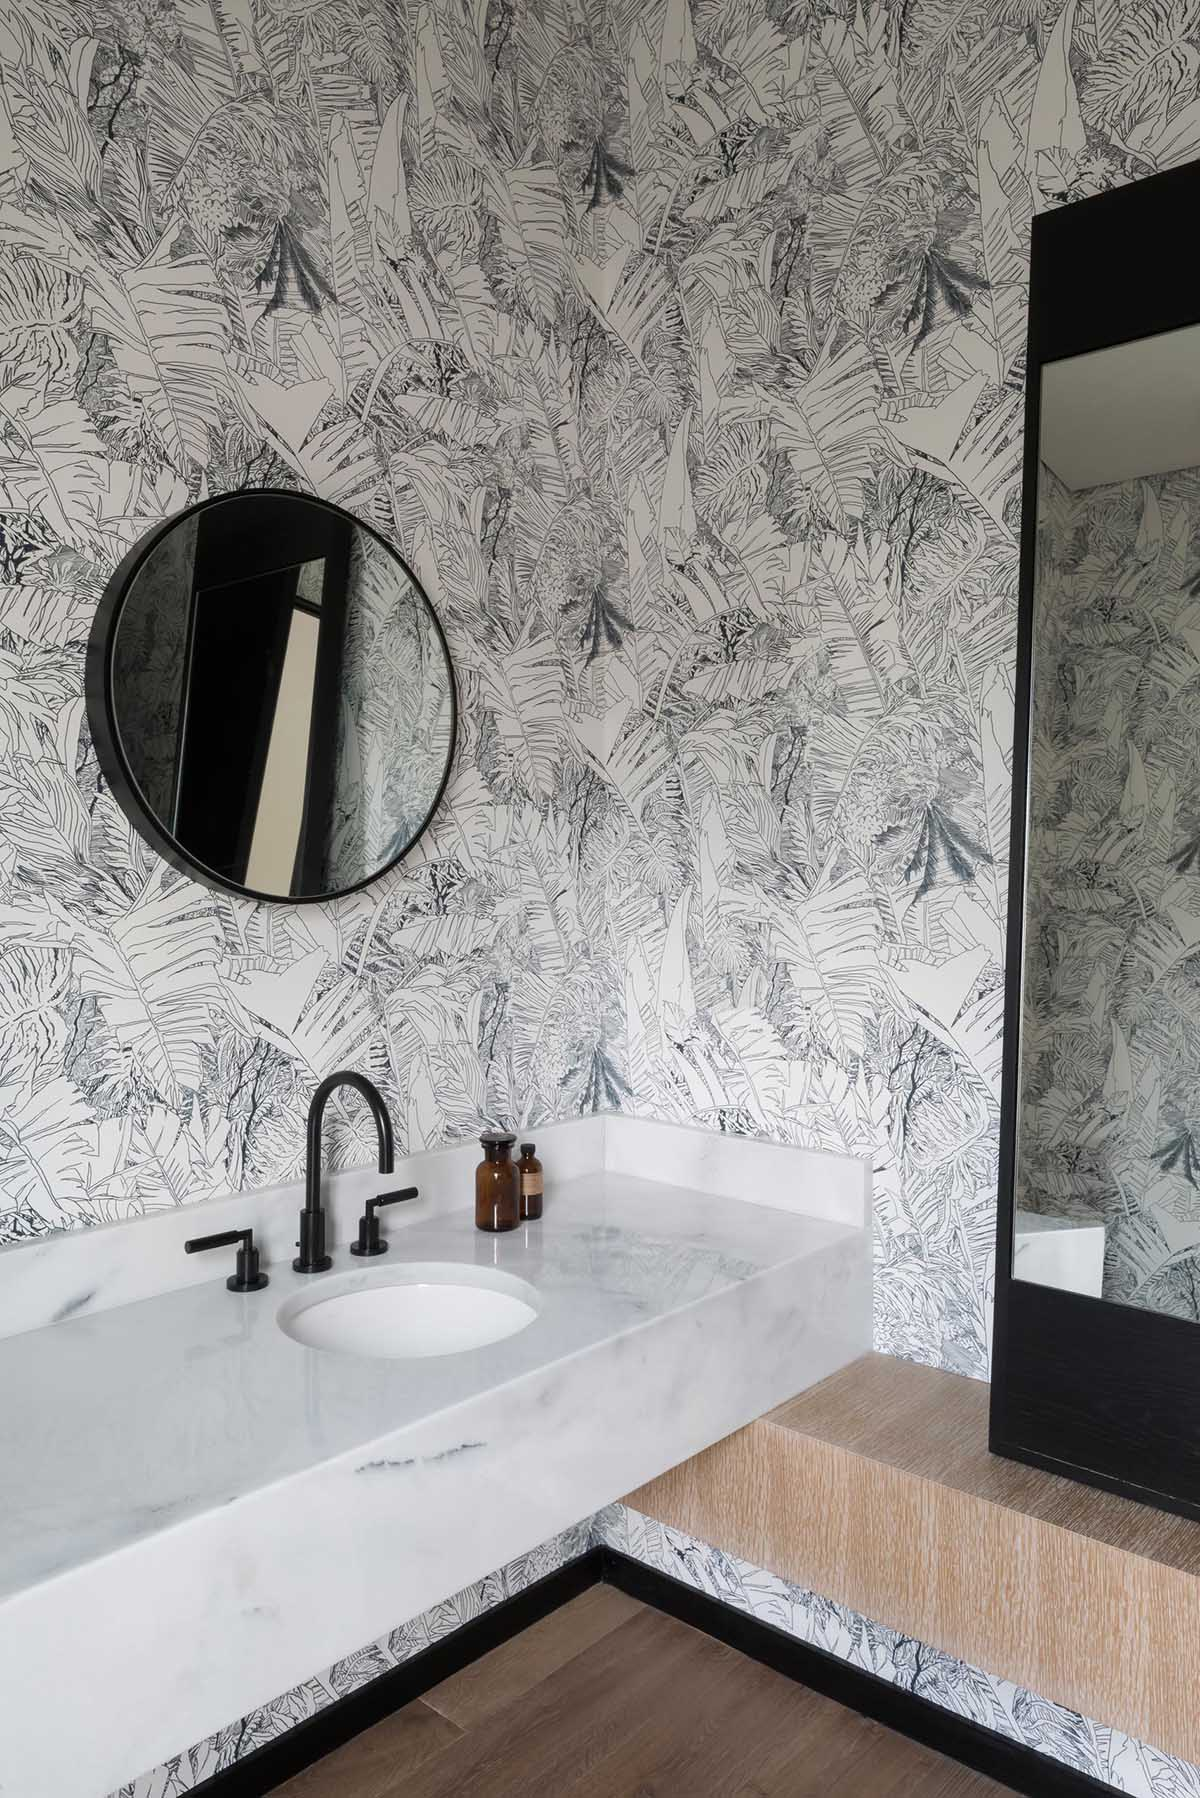 A modern bathroom with black and white tropical print wallpaper.